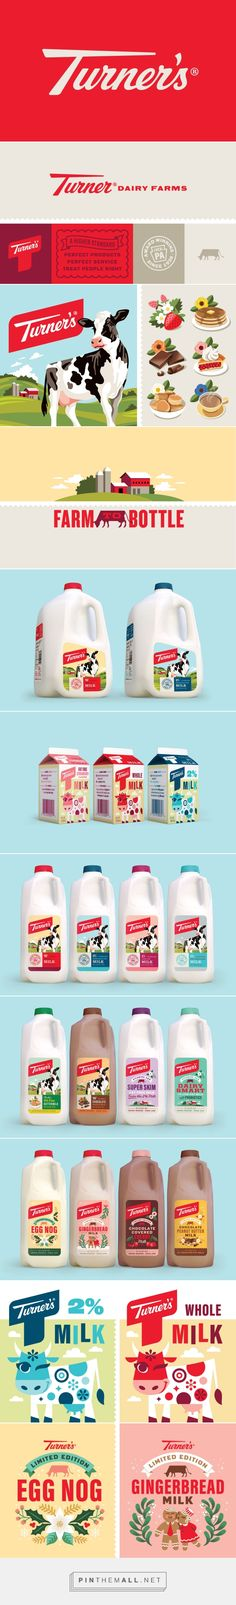 Turner's Dairy packaging design by Emrich Office - http://www.packagingoftheworld.com/2017/02/turners-dairy.html